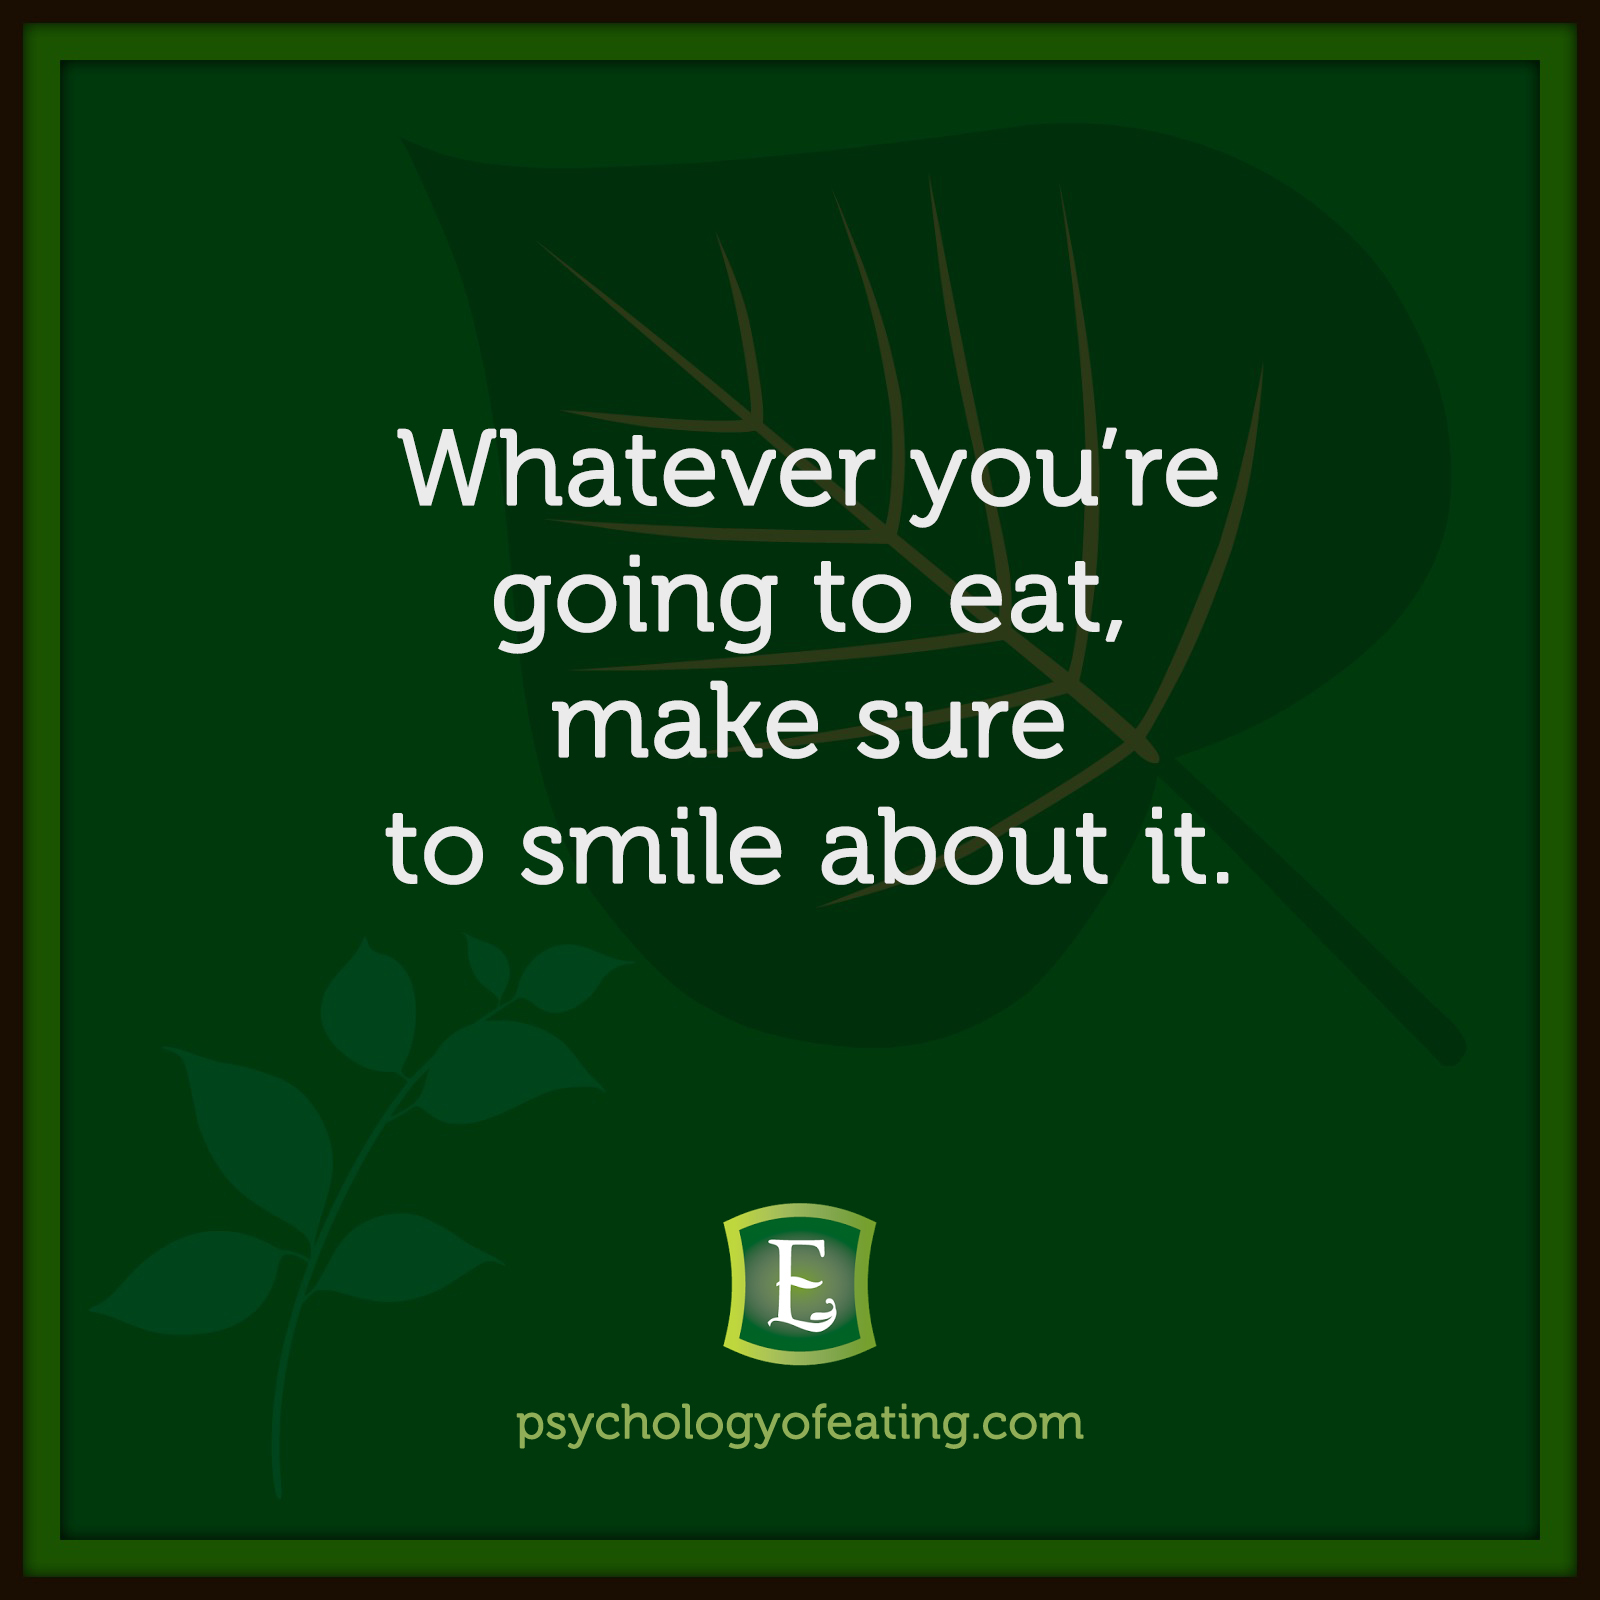 Whatever you're going to eat, make sure to smile about it. #health #nutrition #eatingpsychology #IPE